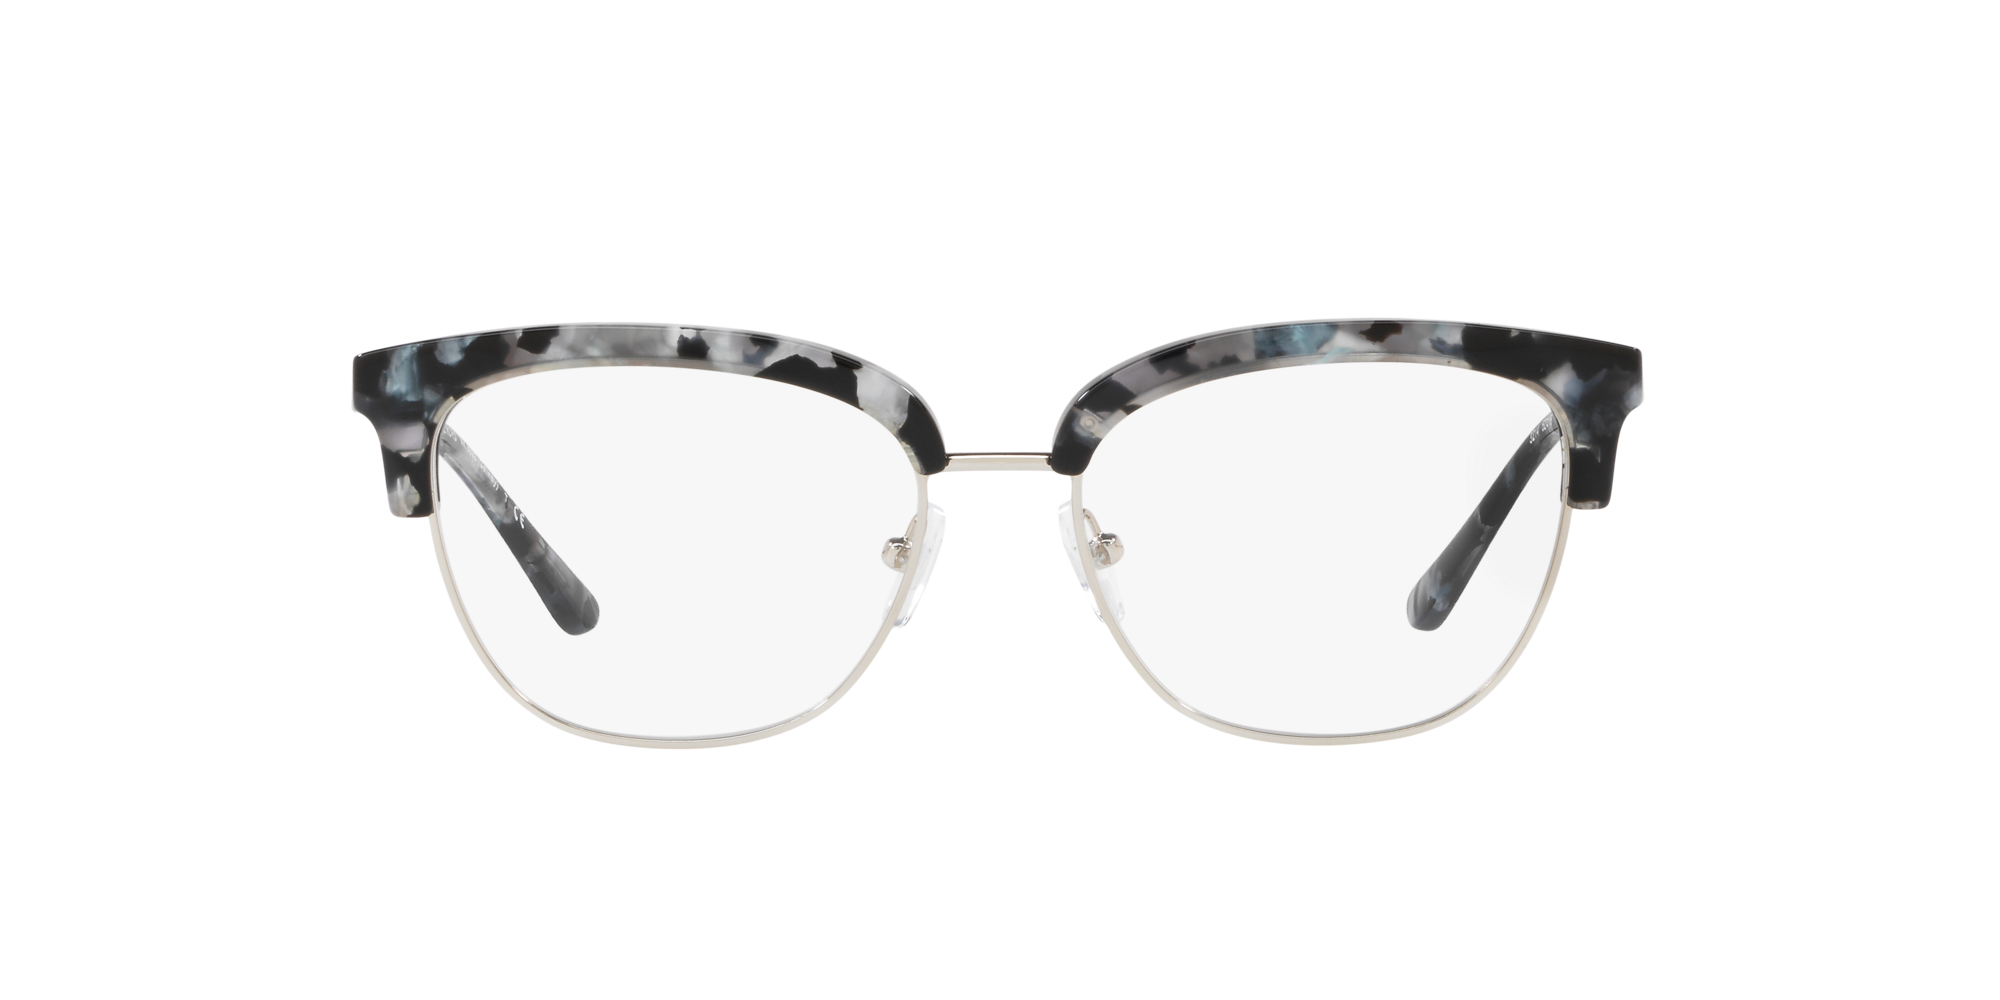 Image for MK3023 GALWAY from LensCrafters | Glasses, Prescription Glasses Online, Eyewear